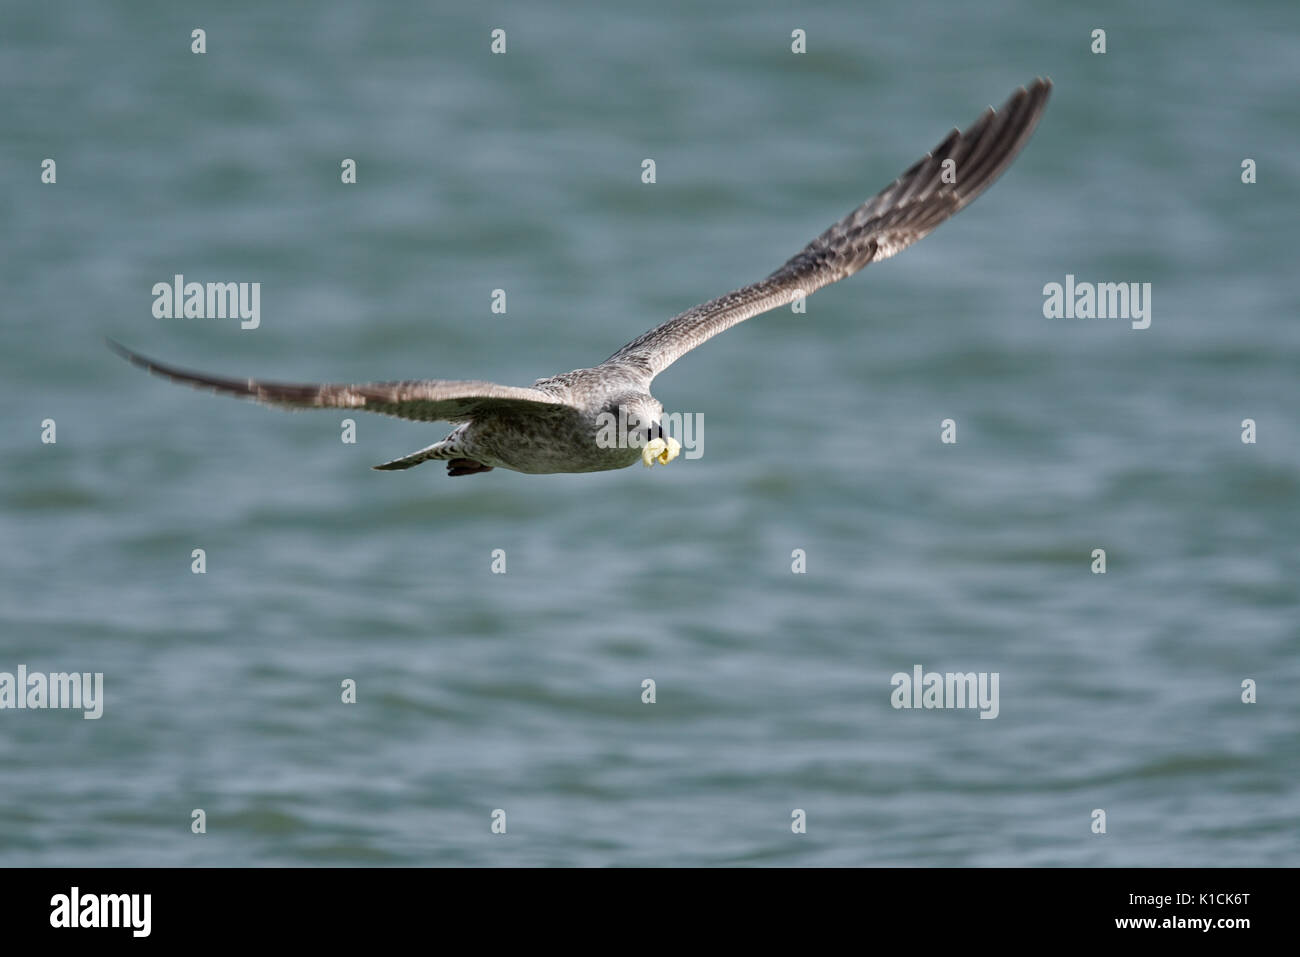 Juvenile Herring Gull Larus argentatus flying low over the sea carrying a catch of food in its beak. Gull Laridae family. Space for copy - Stock Image